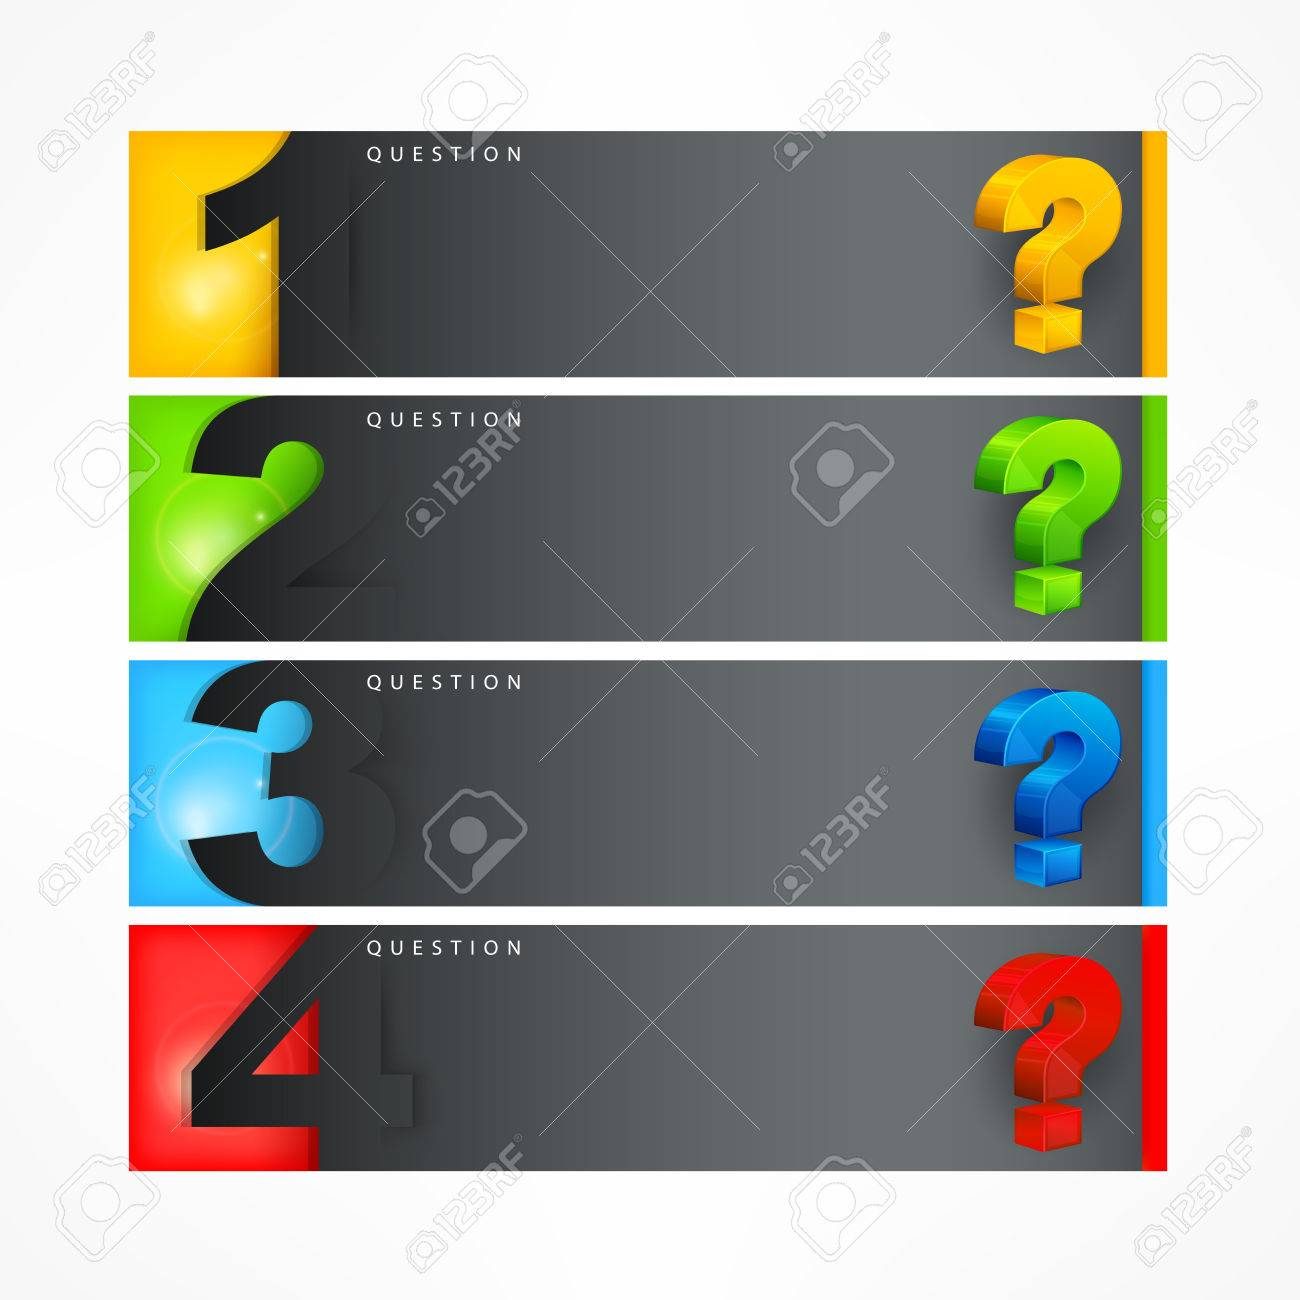 Free powerpoint templates question mark image collections free powerpoint templates question mark image collections free powerpoint templates question mark image collections free powerpoint toneelgroepblik Gallery